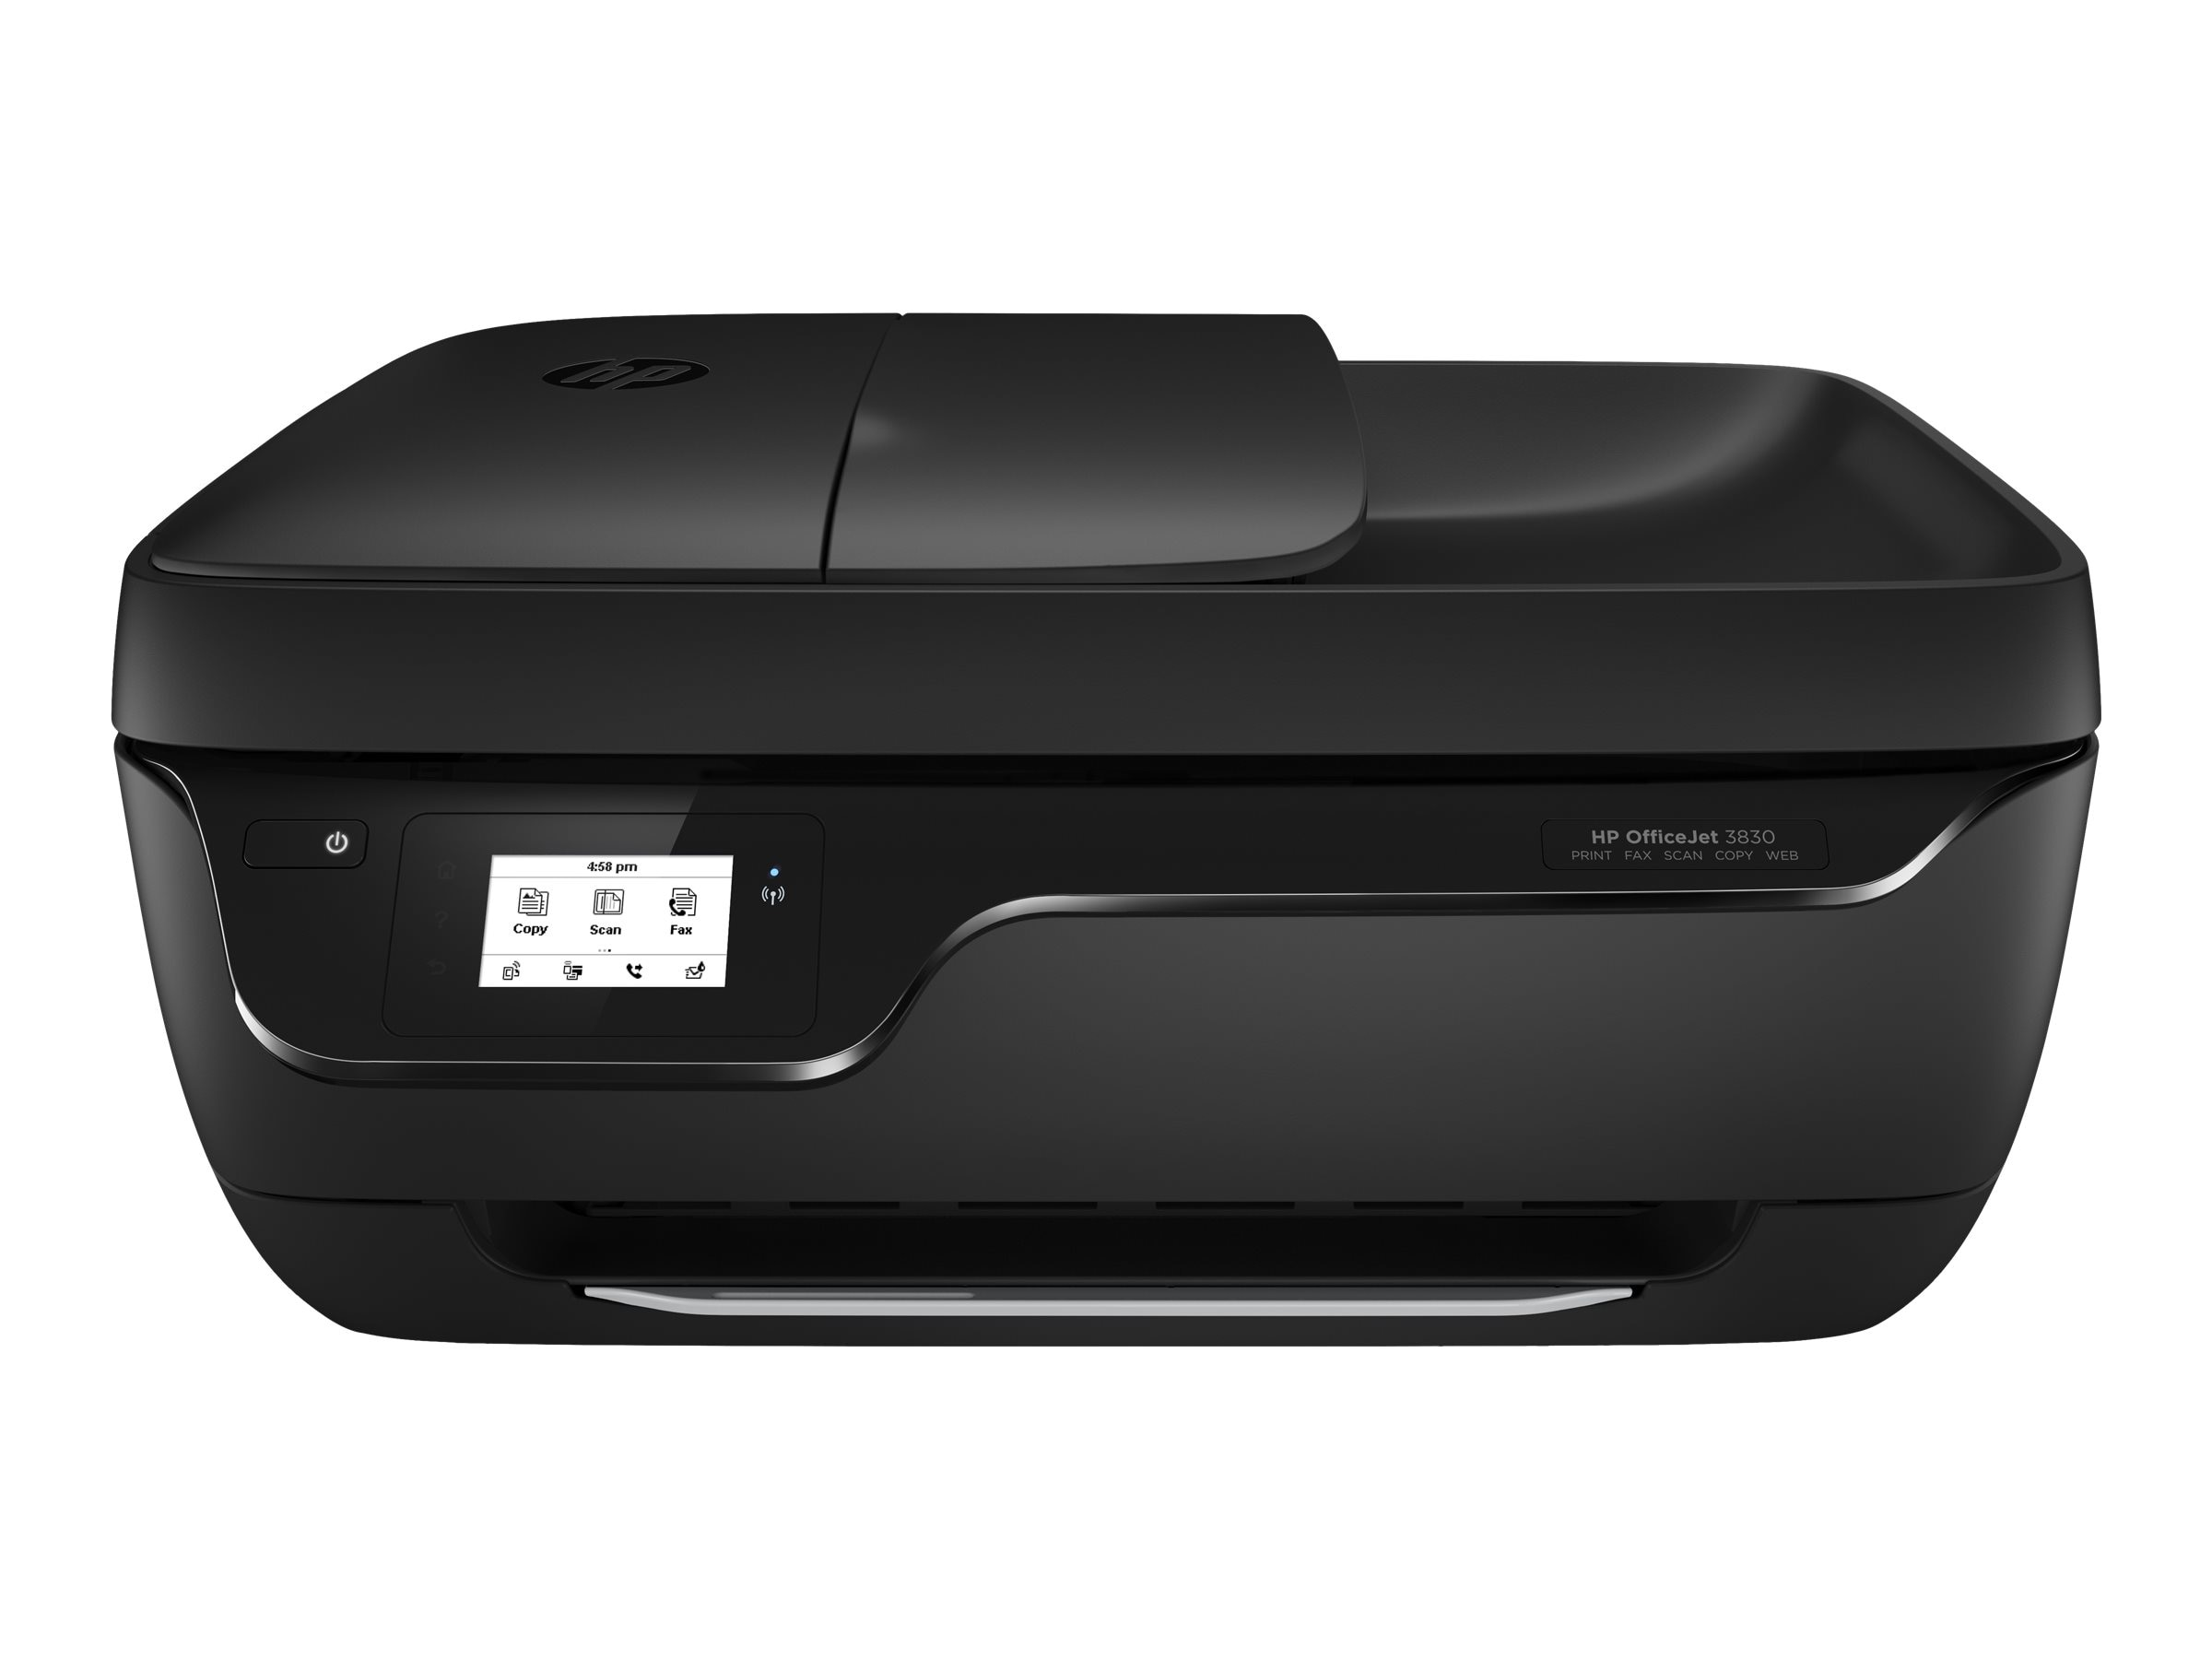 HP Officejet 3830 All-In-One Printer, K7V40A#B1H